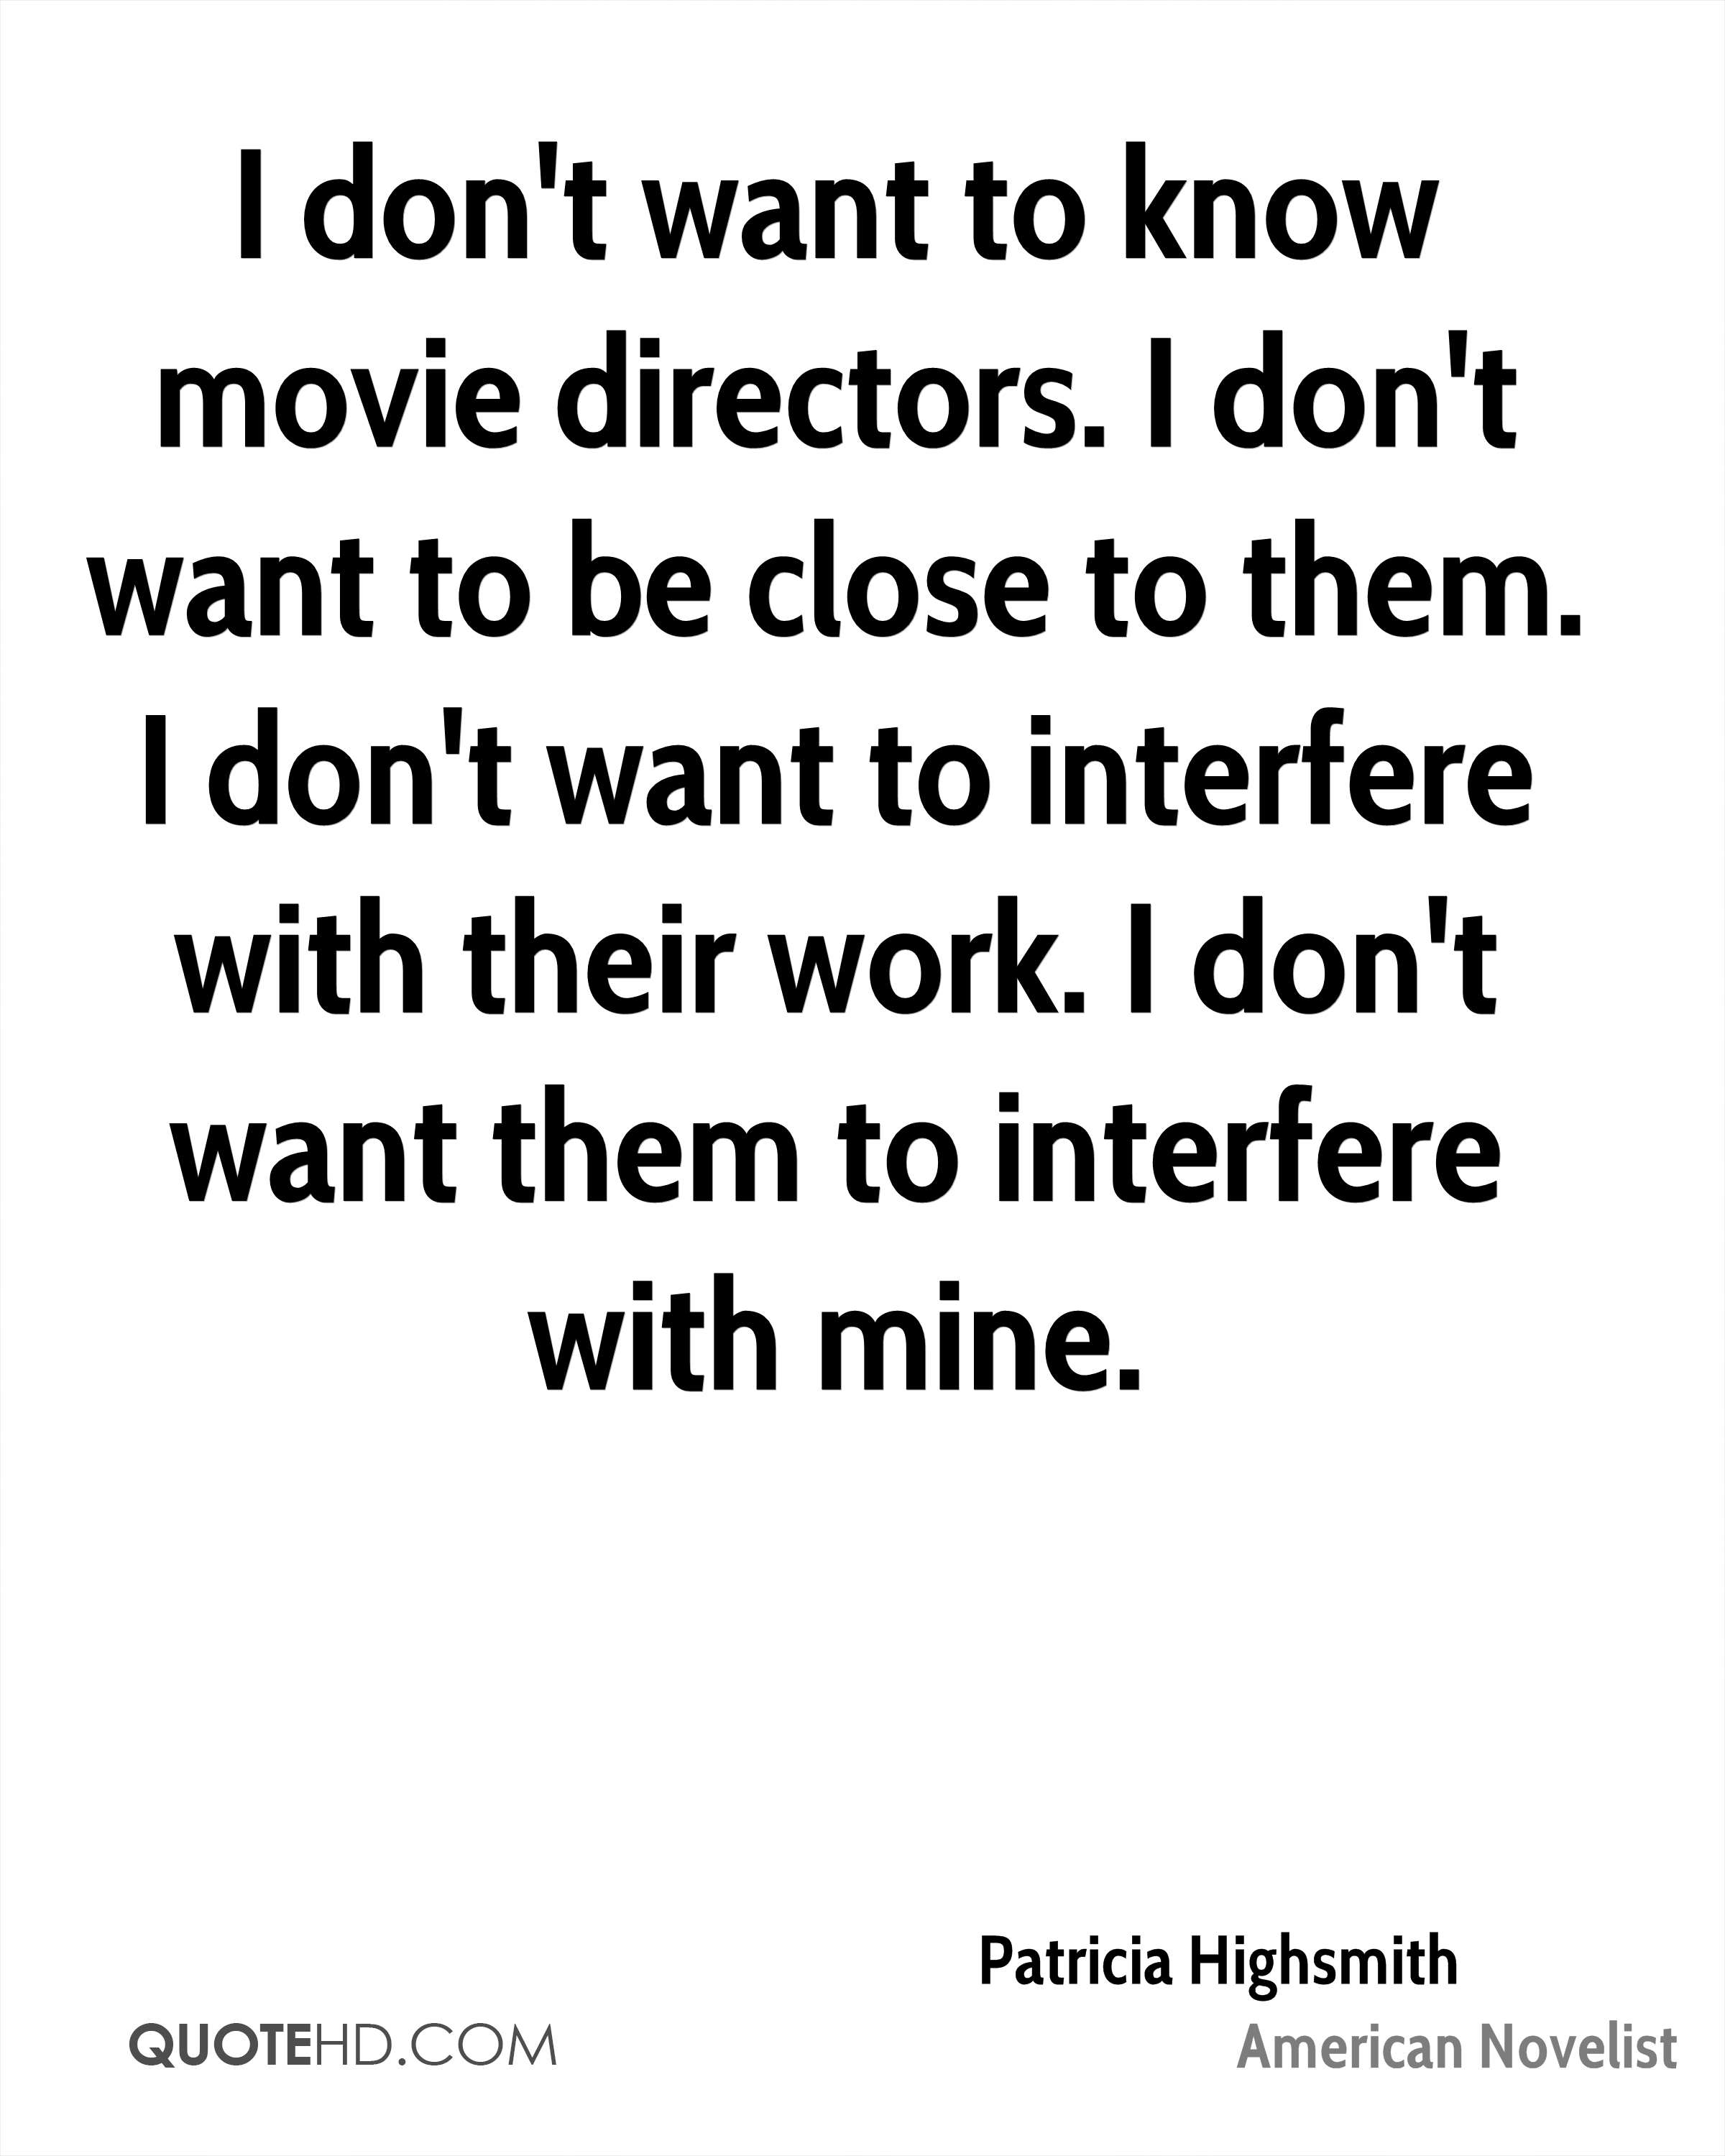 I don't want to know movie directors. I don't want to be close to them. I don't want to interfere with their work. I don't want them to interfere with mine.